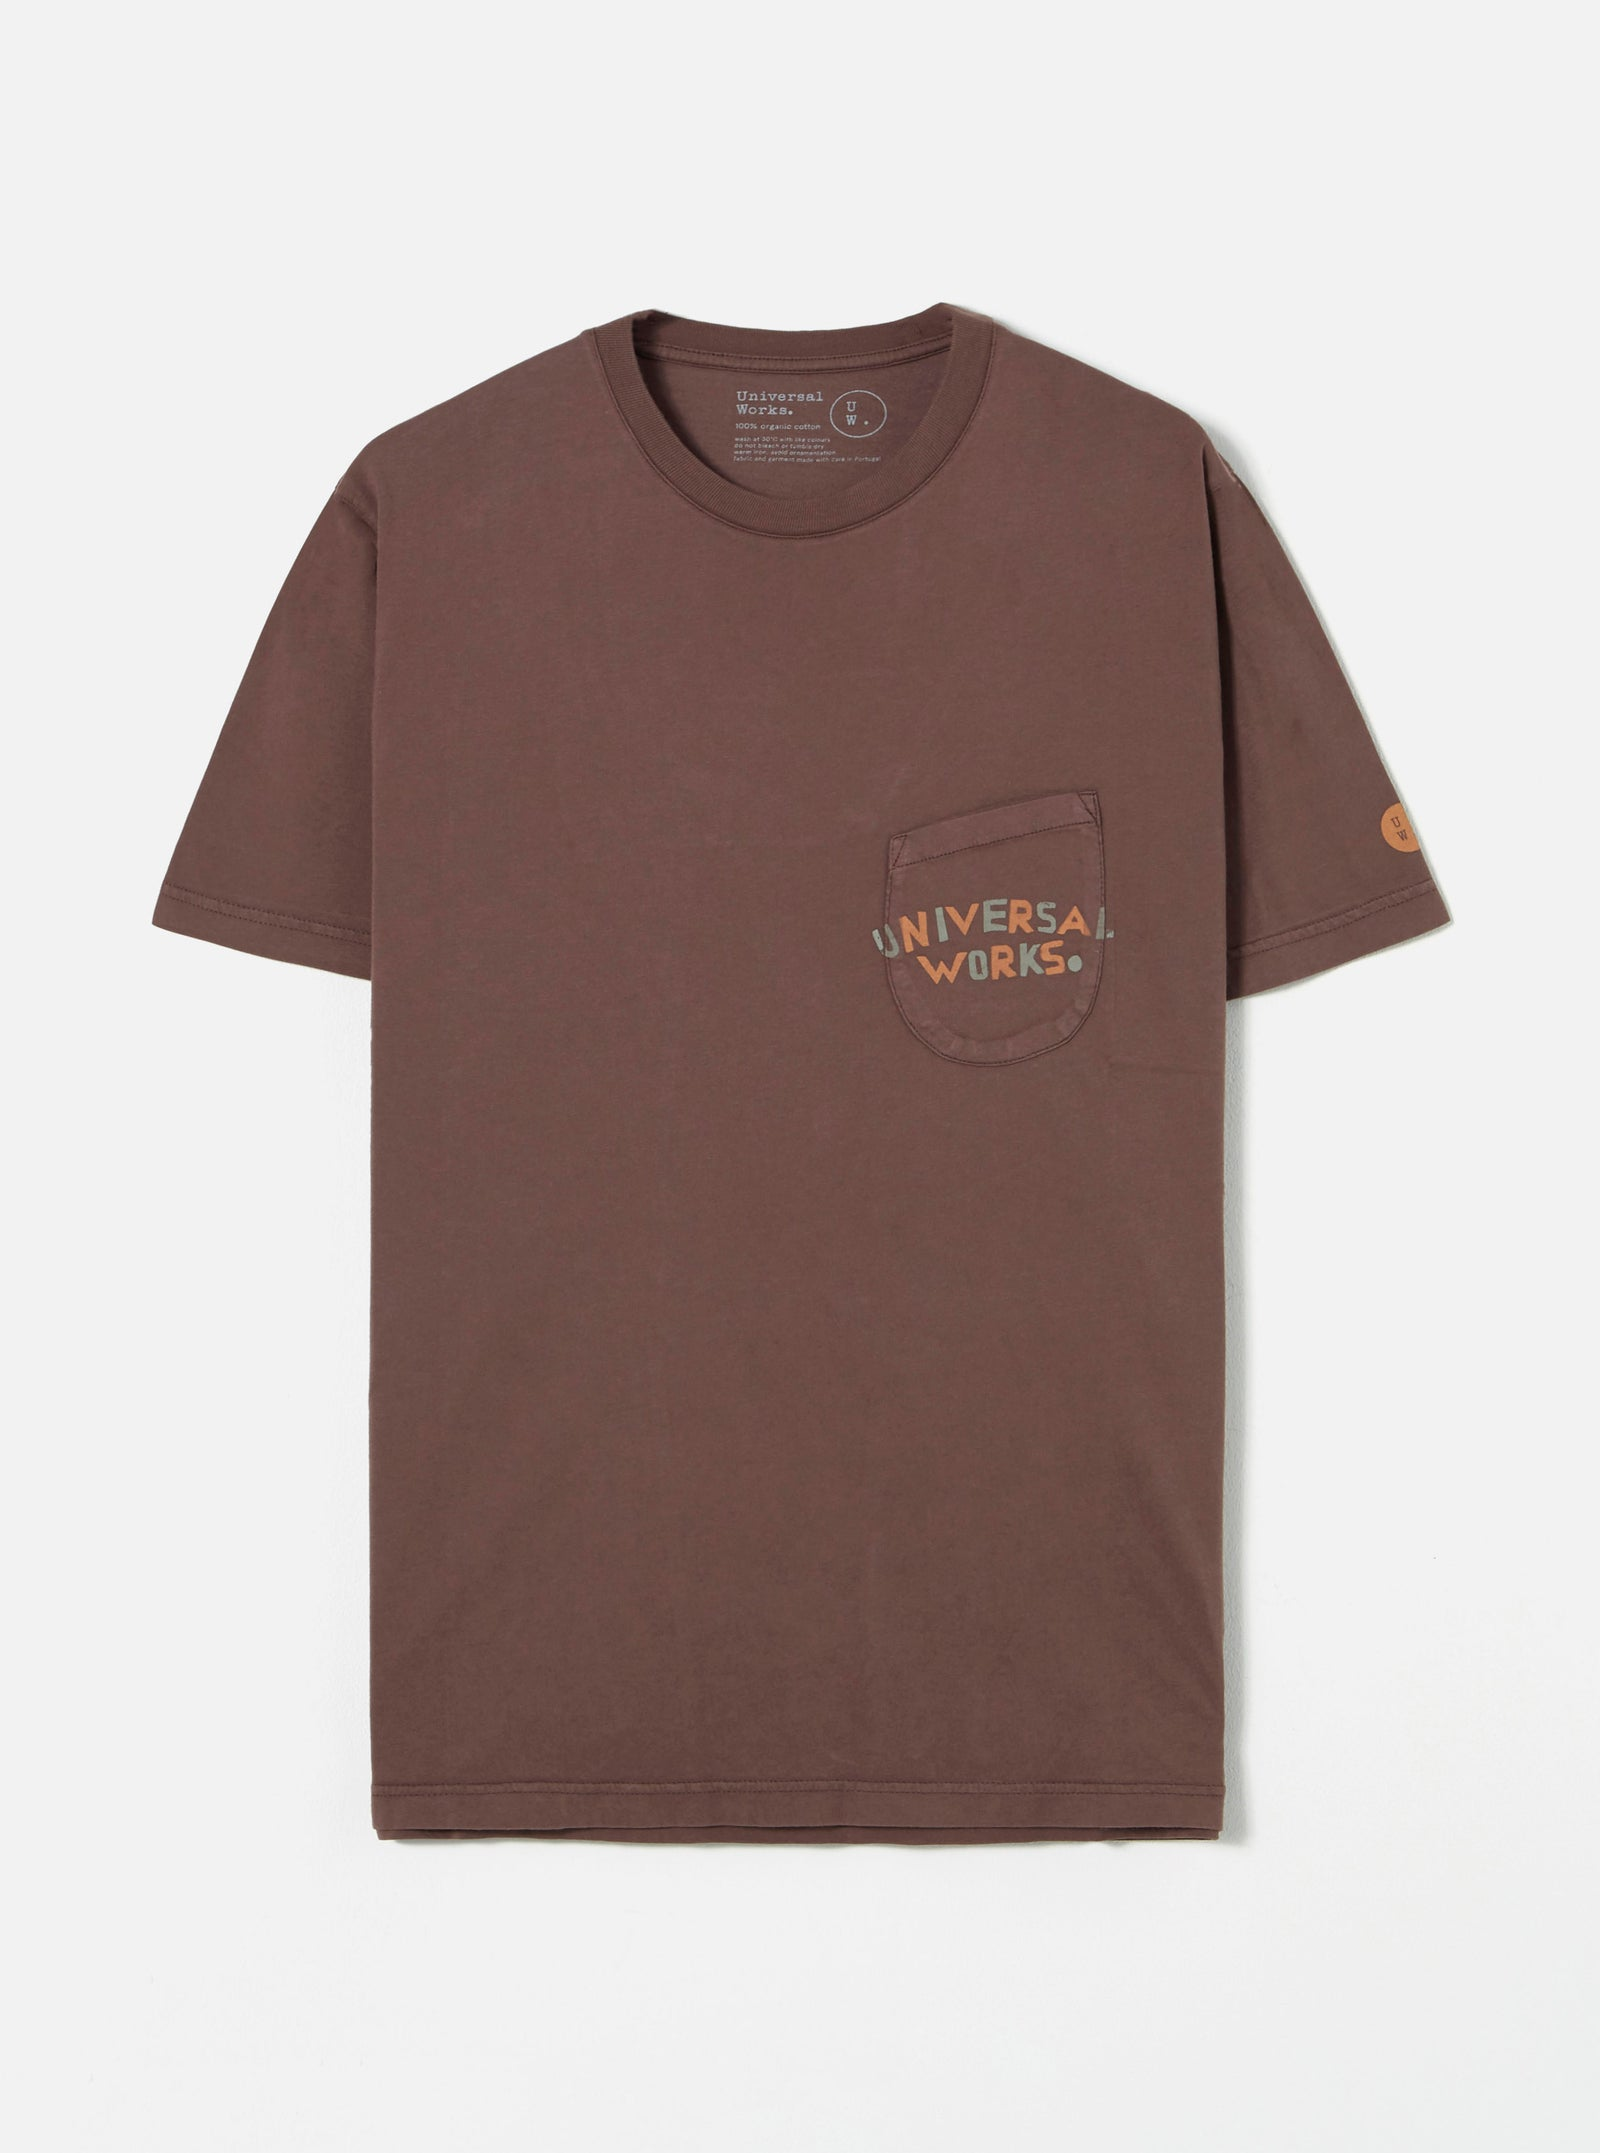 Universal Works Print Pocket Tee in Raisin Universal Works Print